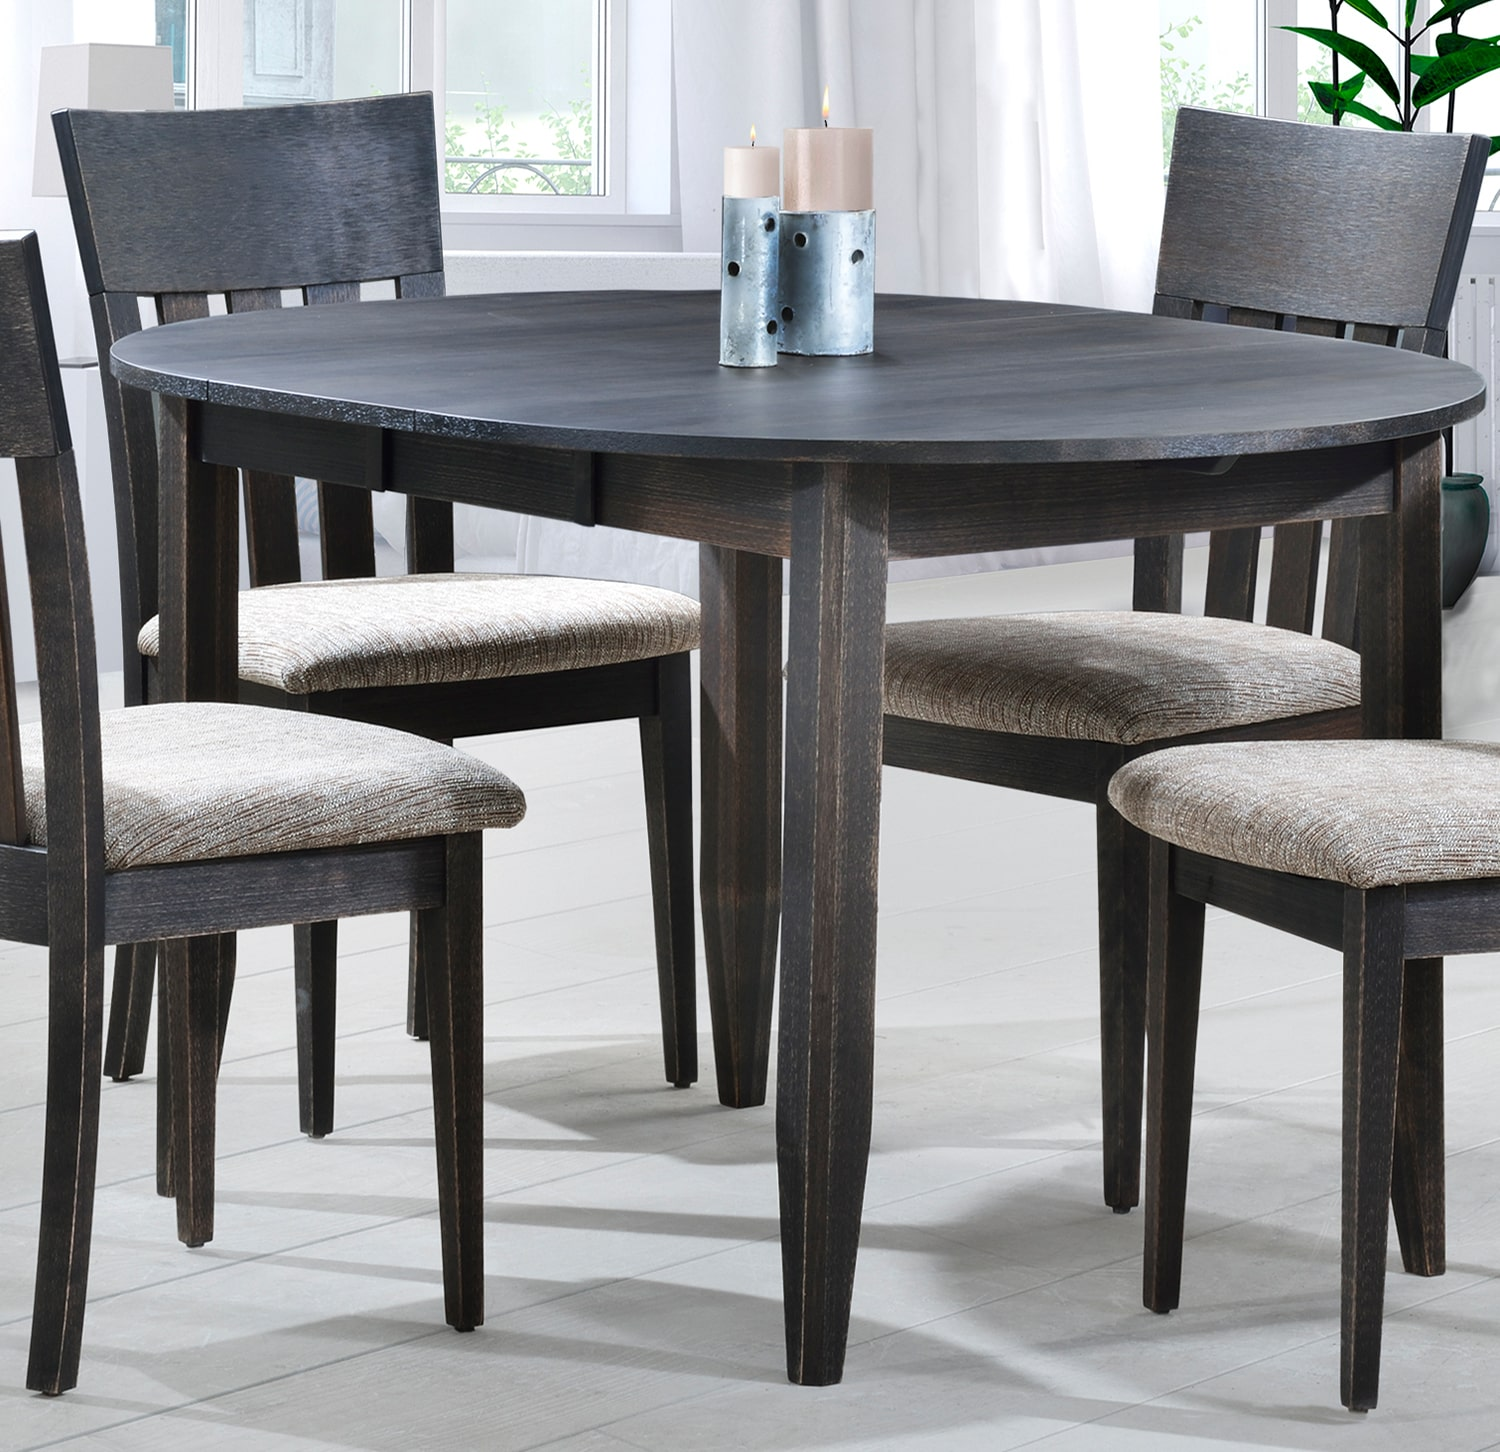 Dining room tables leon 39 s for Leon s dining room tables